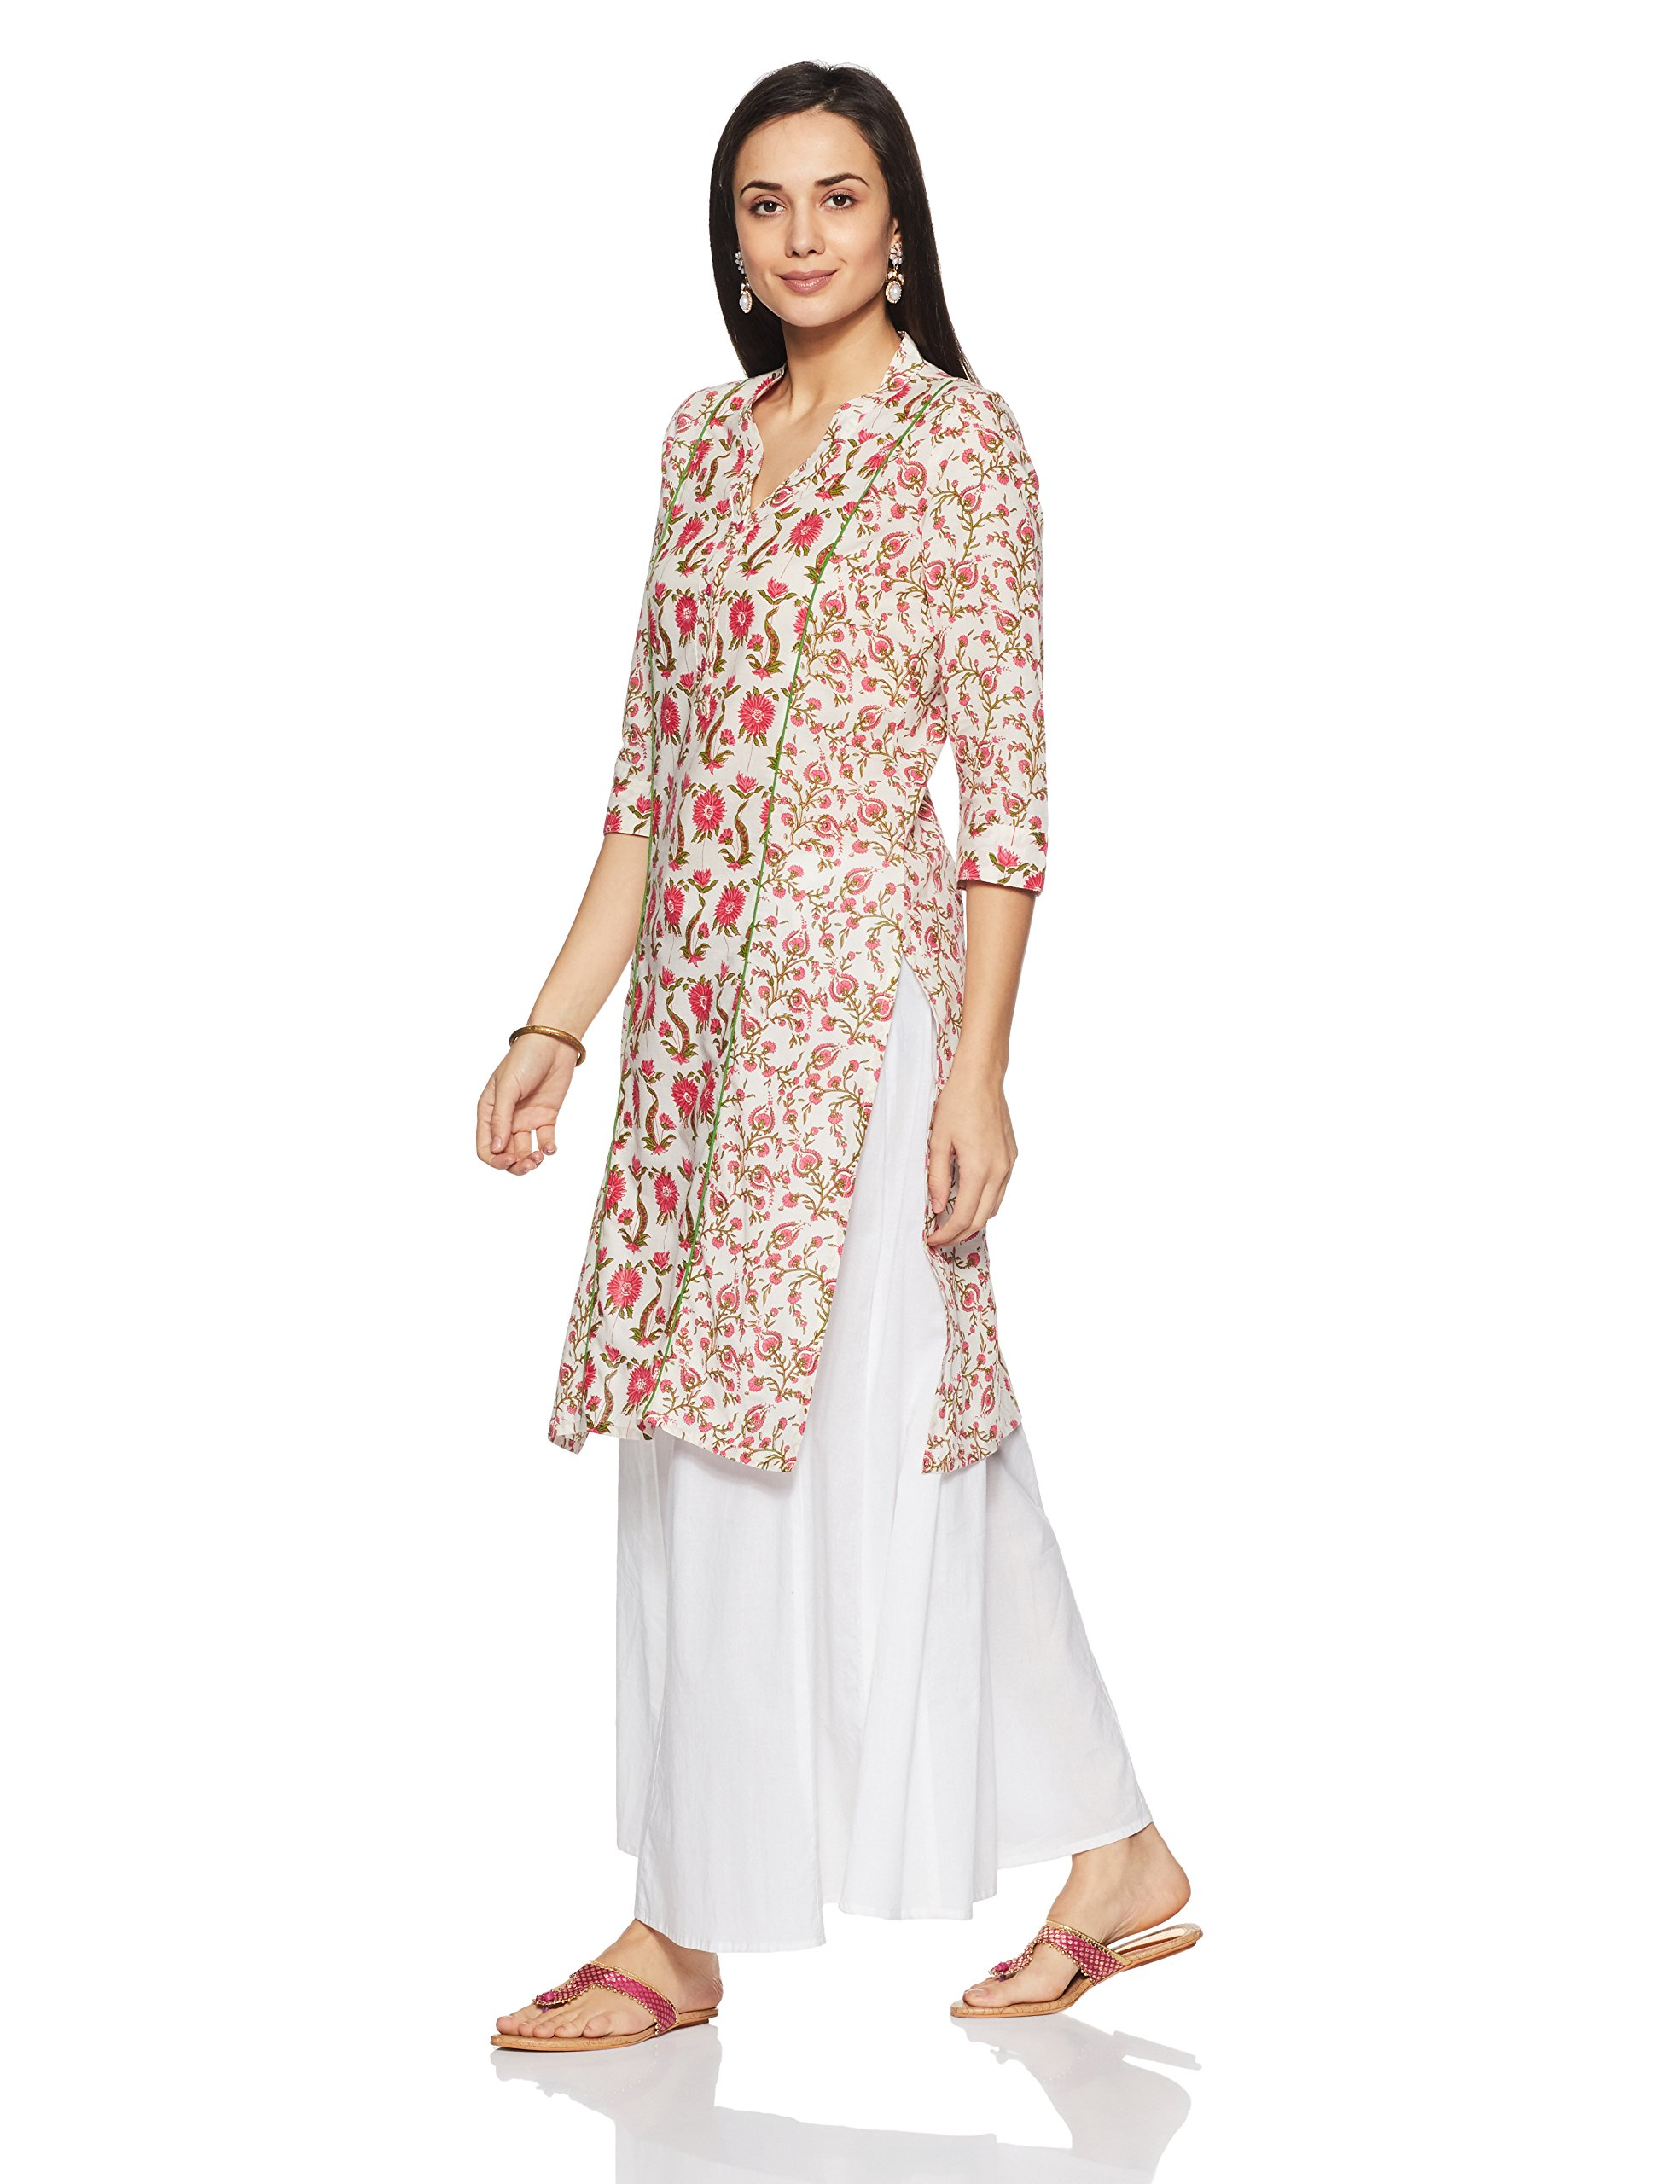 00d43c70e36 Amazon Brand- Myx Women s Straight Cotton Kurta